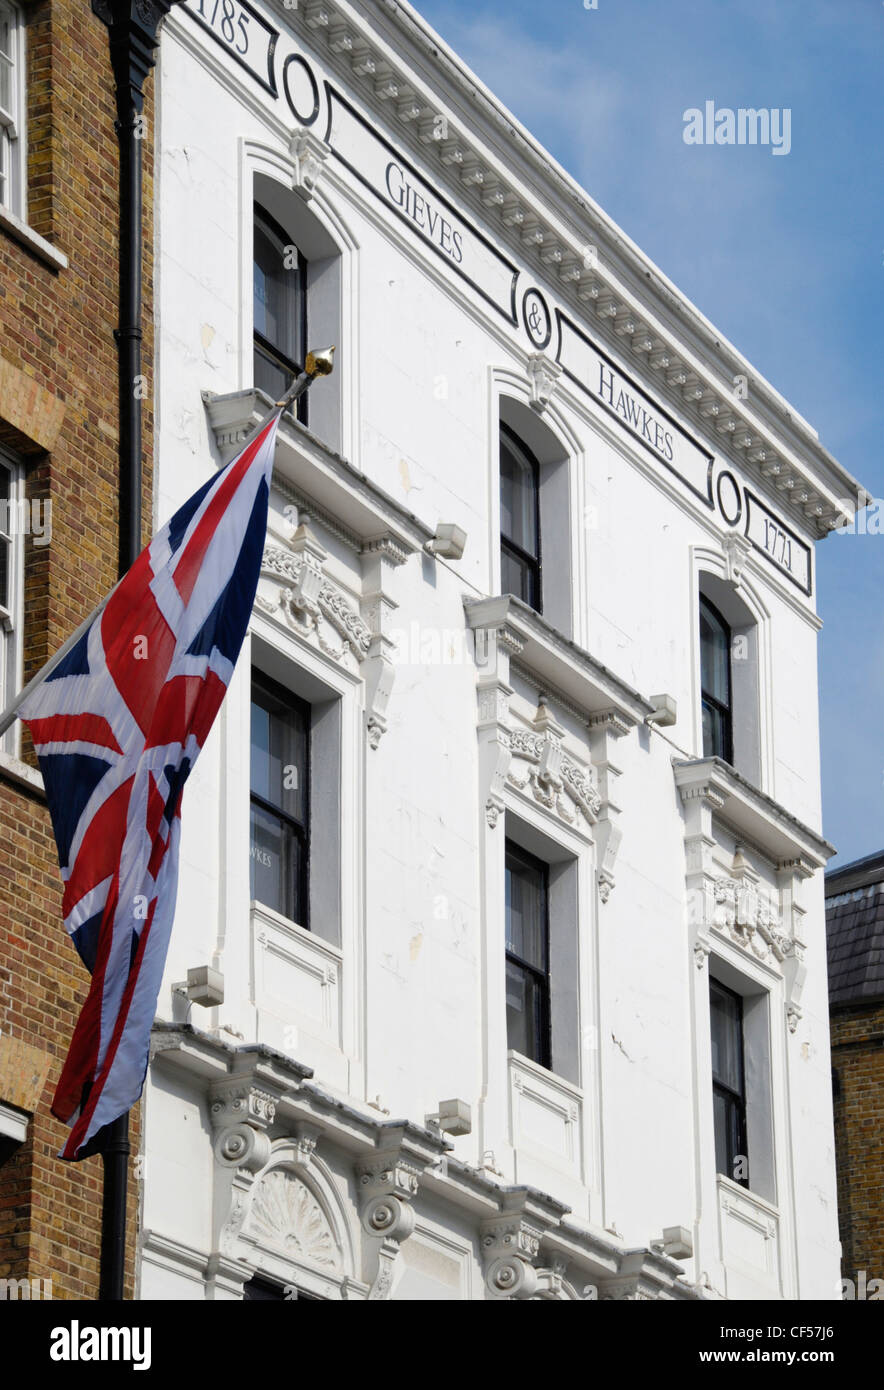 A British flag hangs above Gieves and Hawkes tailors on Saville Row. - Stock Image